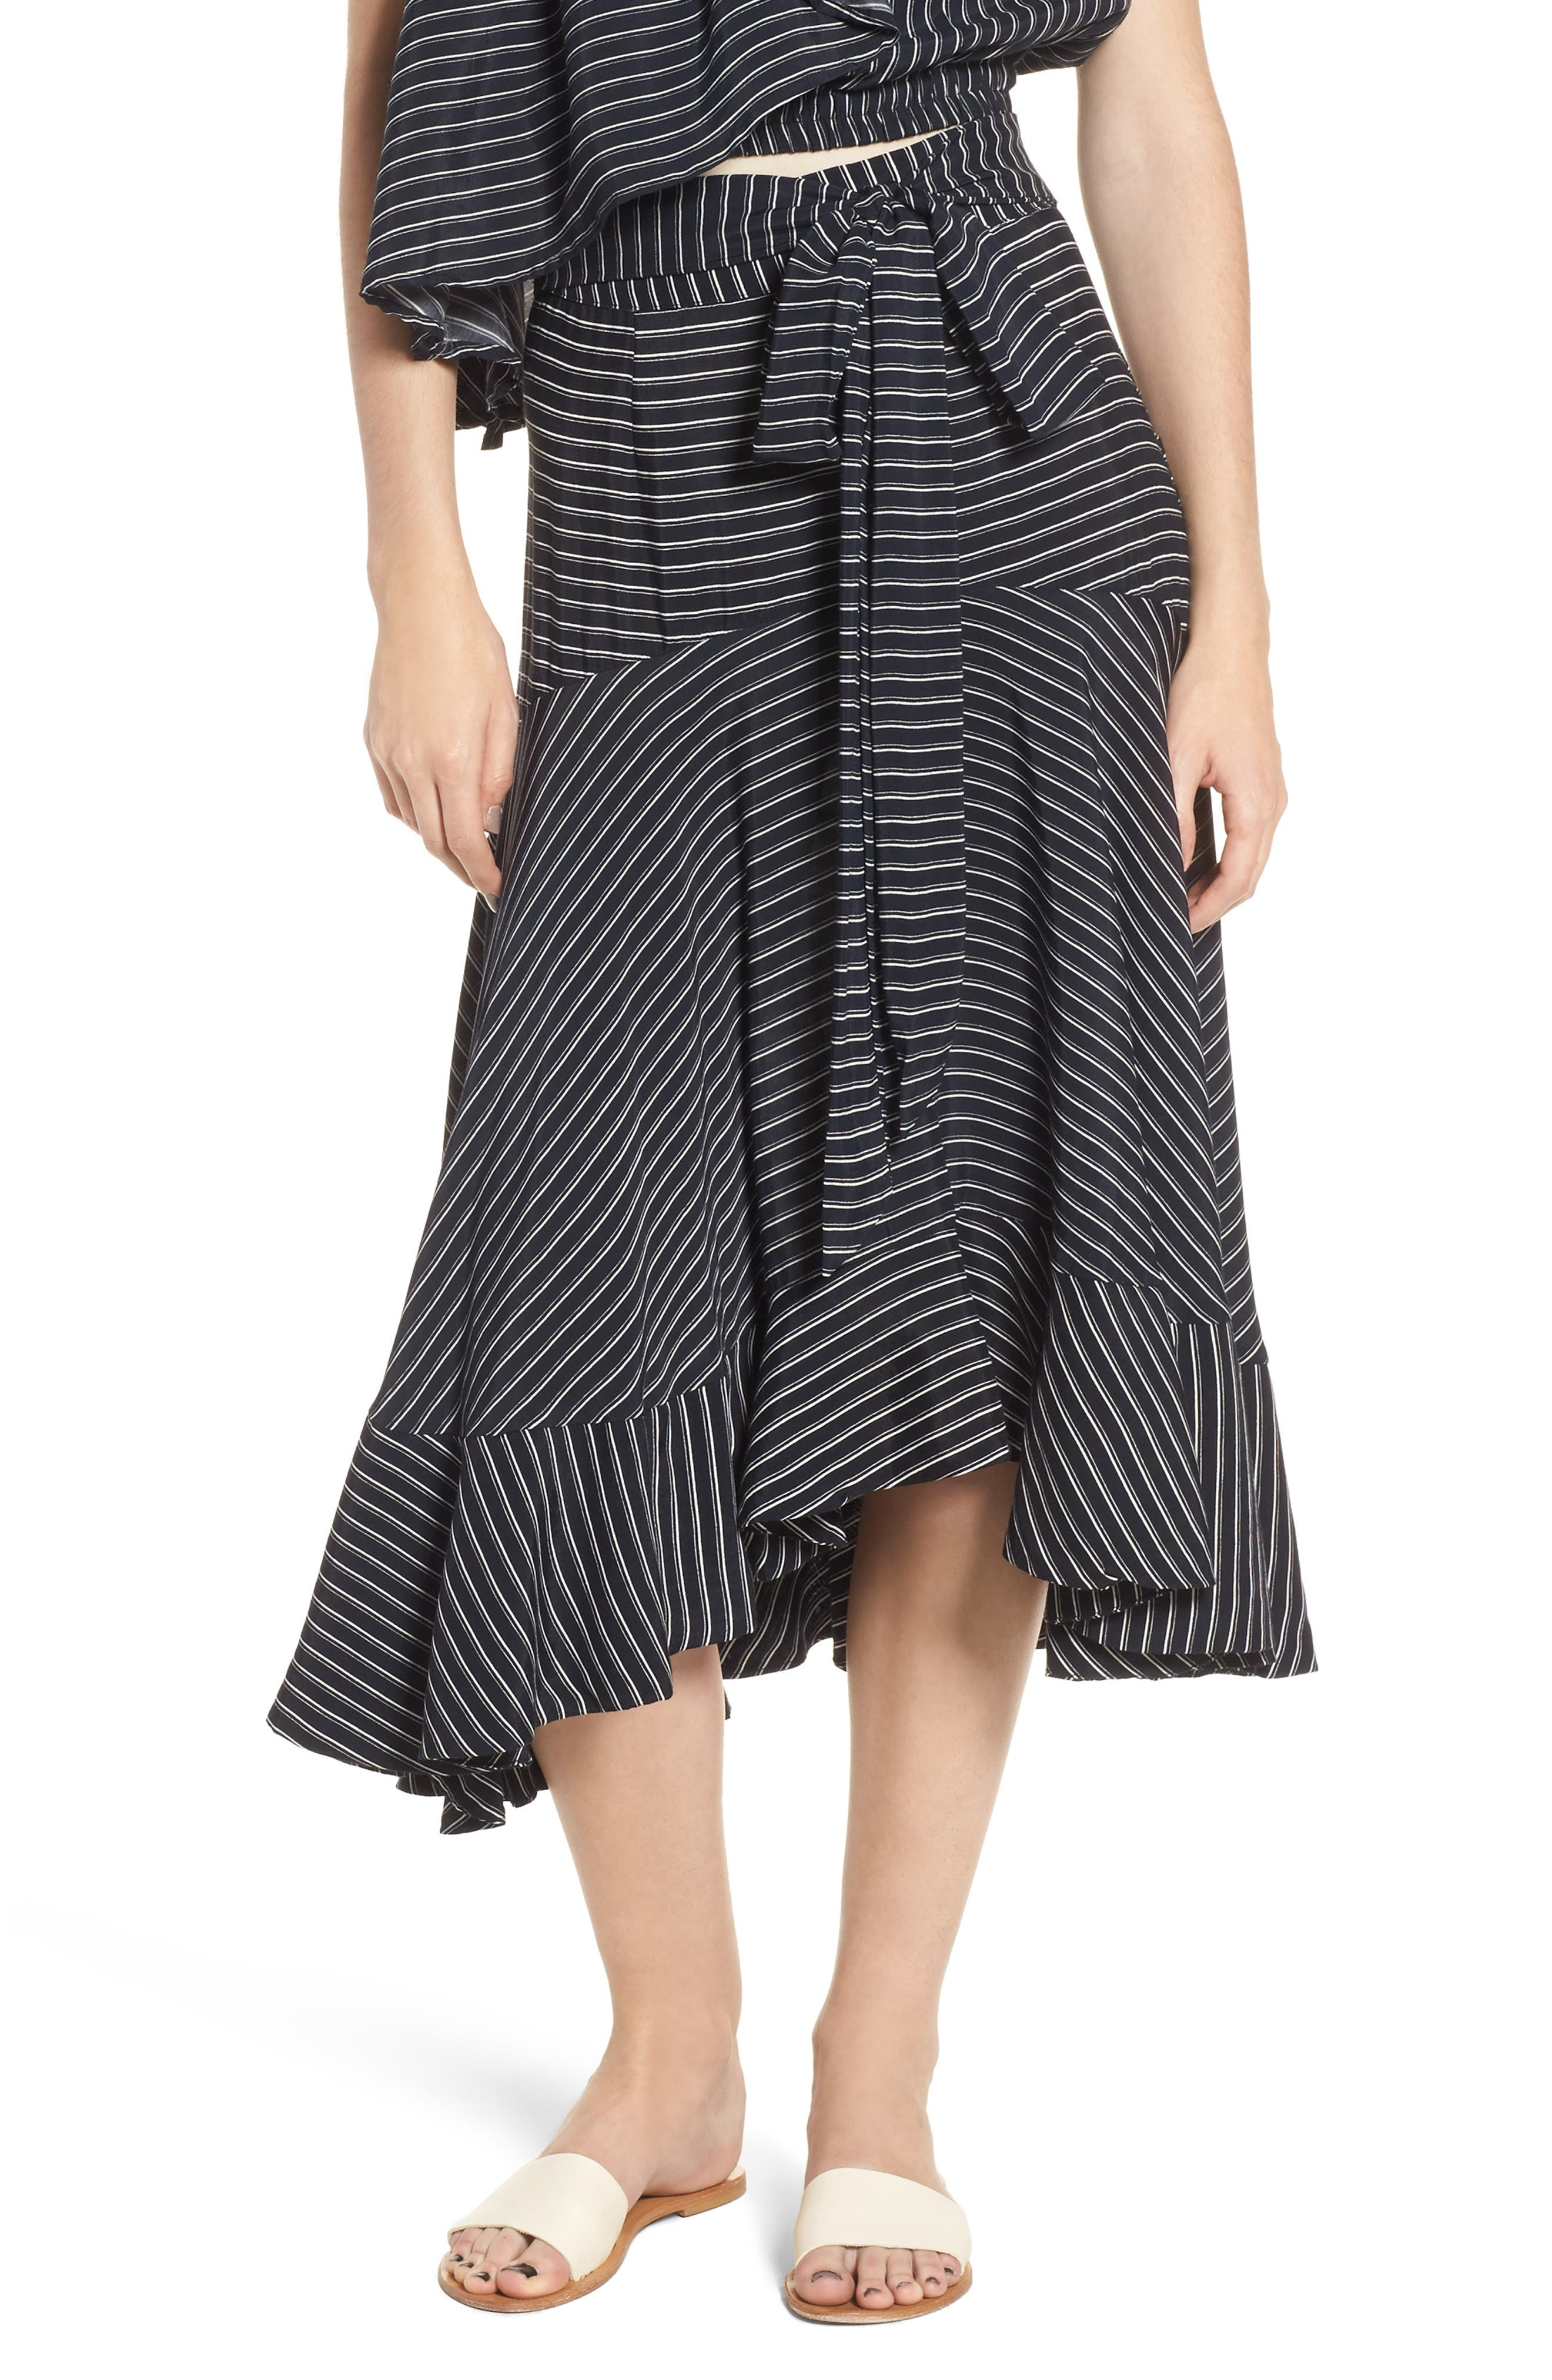 Kamares Ruffle Midi Skirt,                         Main,                         color, San Cristobal Stripe Print